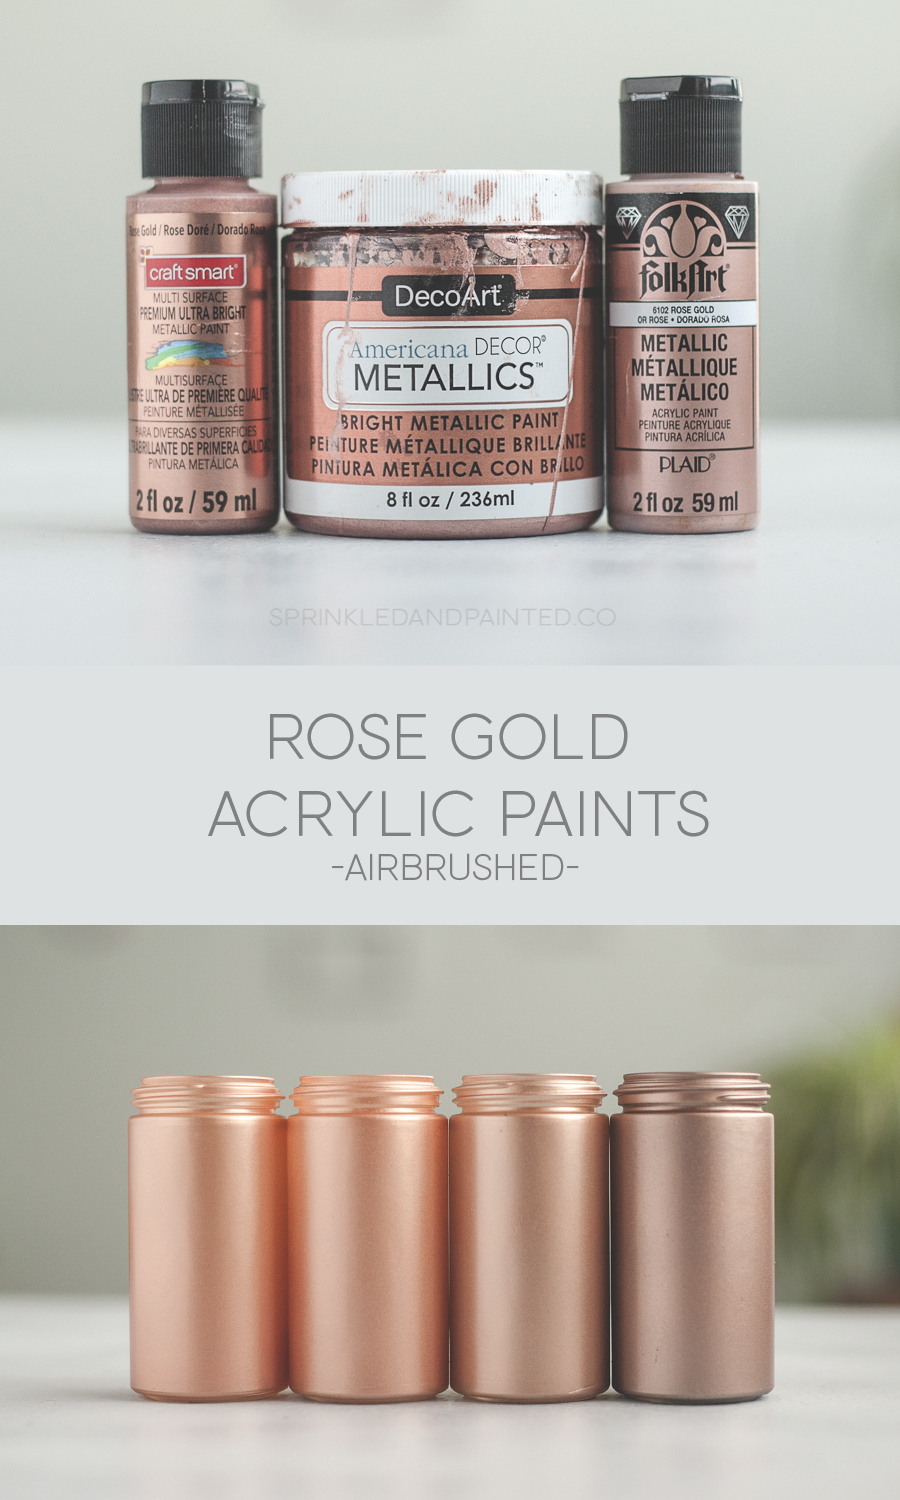 Rose gold acrylic paints for airbrushing.